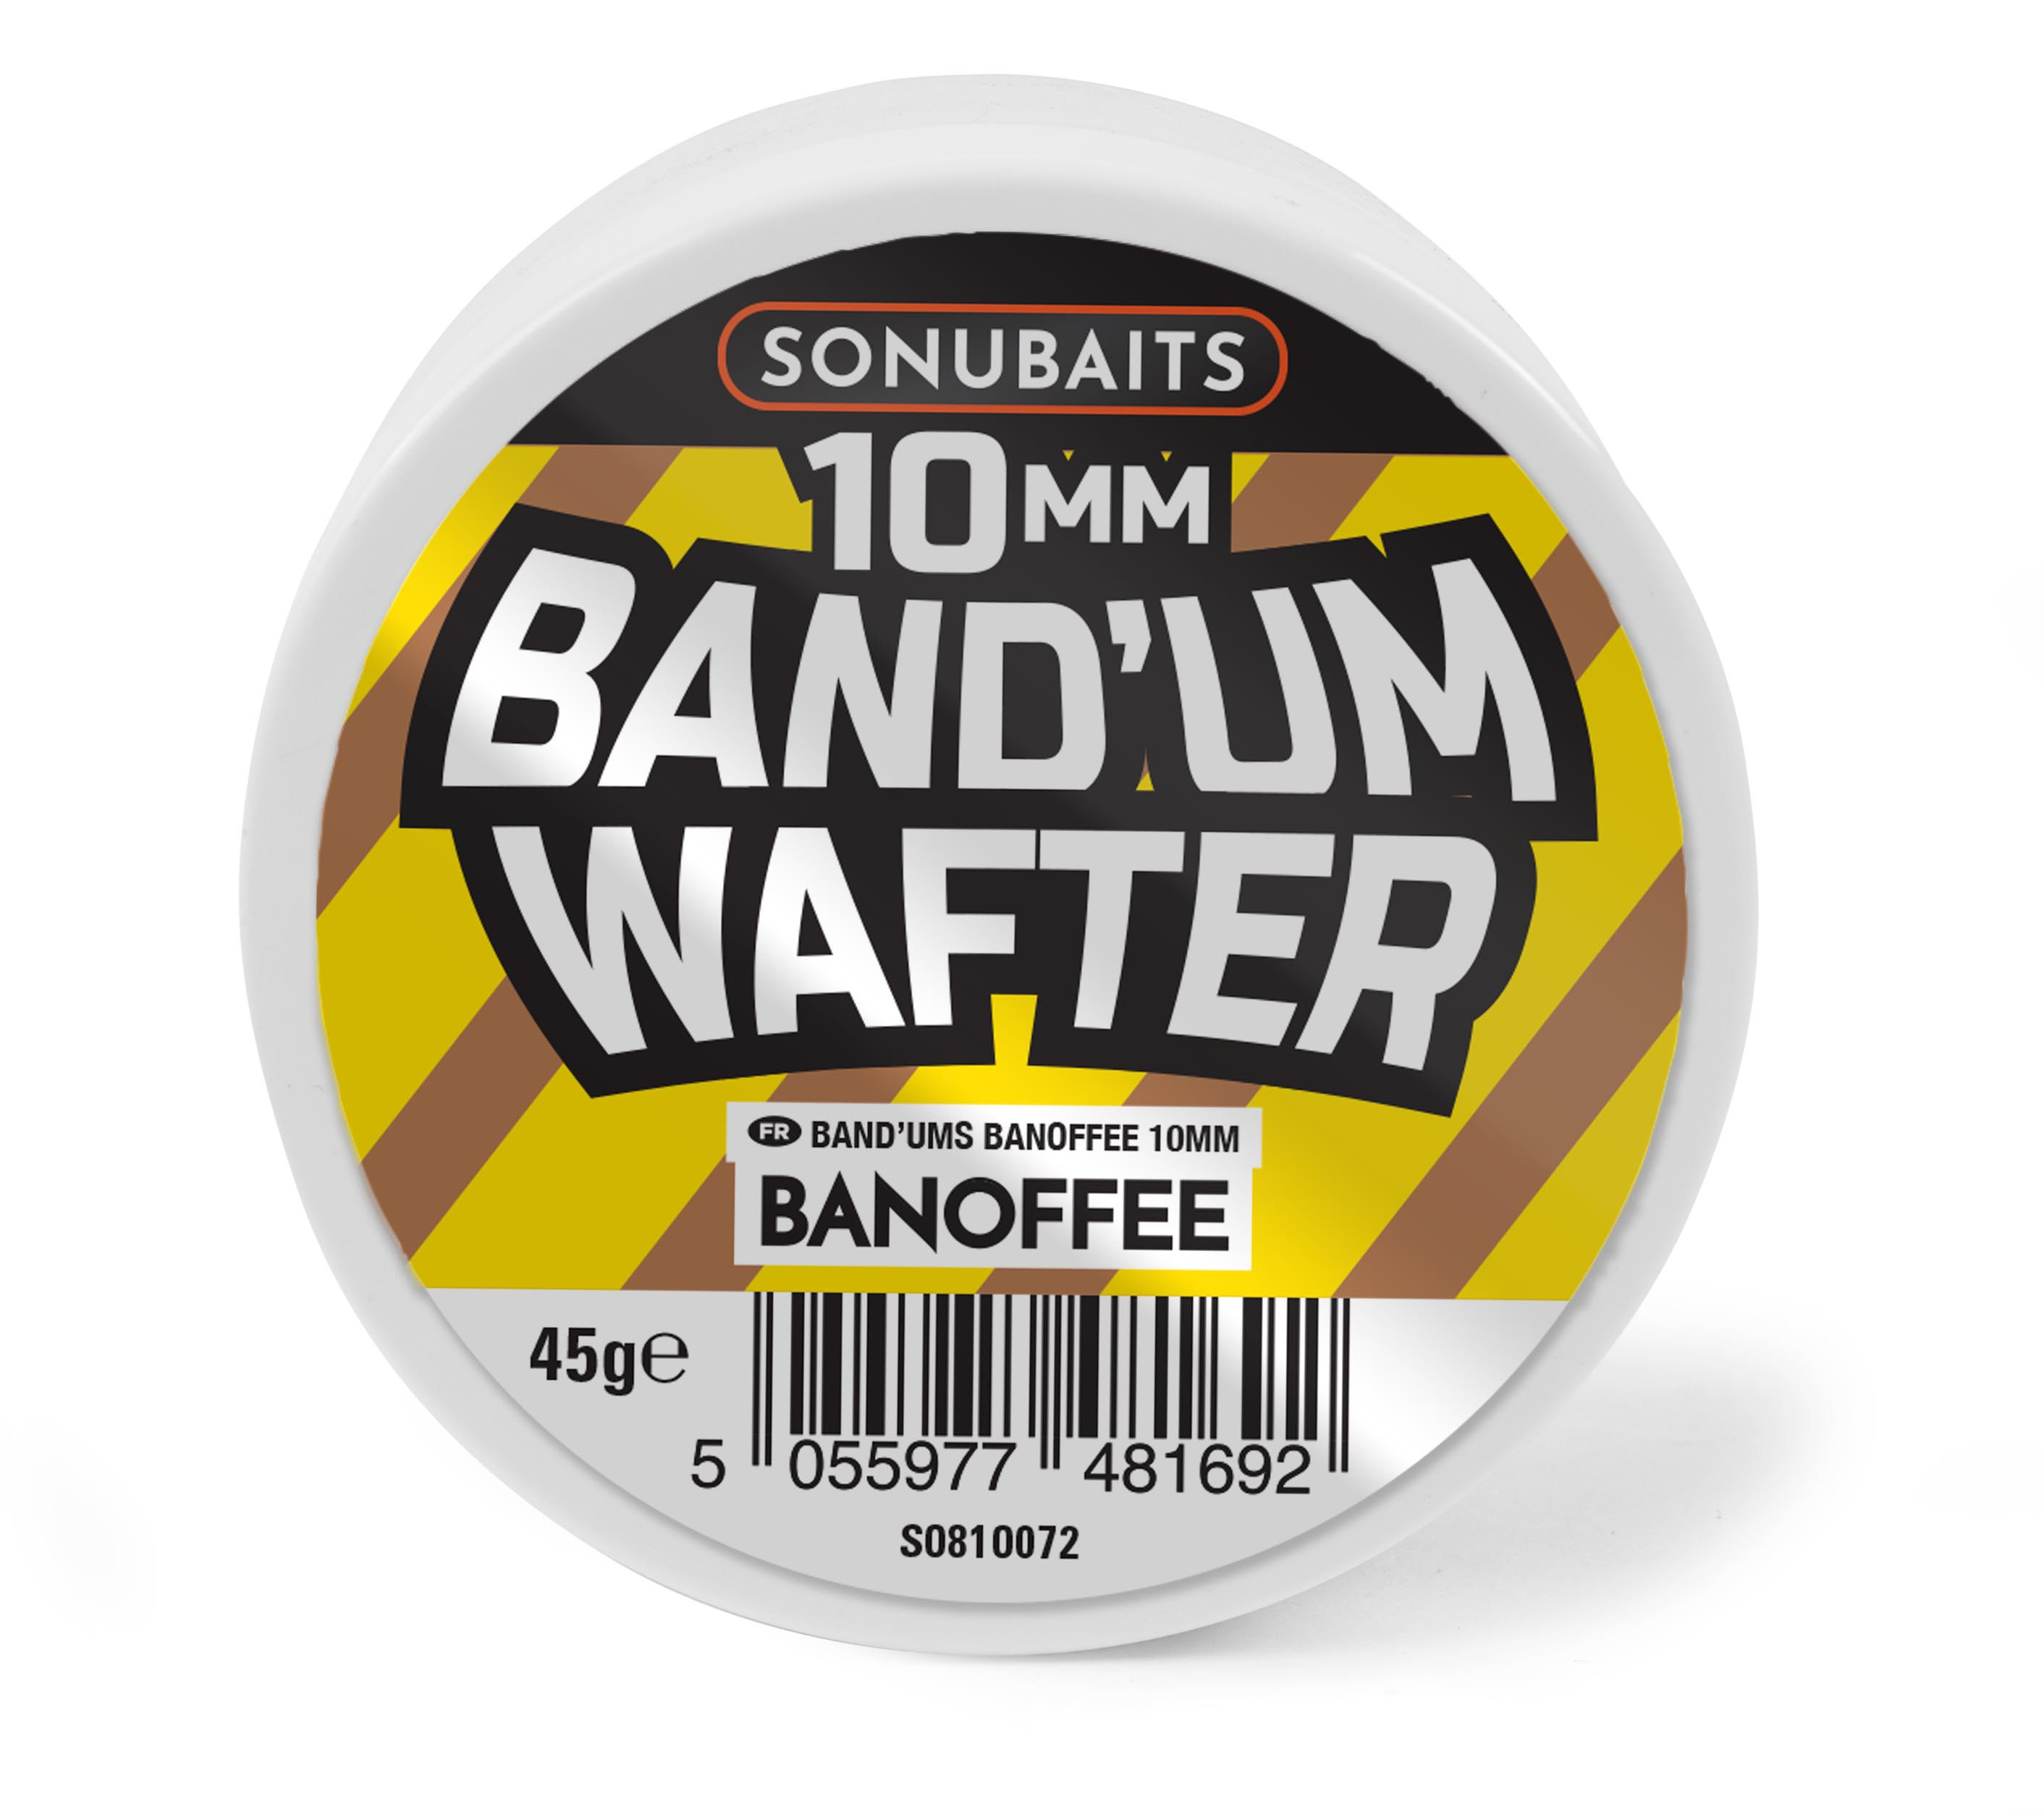 "SONUBAITS BAND""UM WAFTERS 10 MM BANOFFEE 45G"